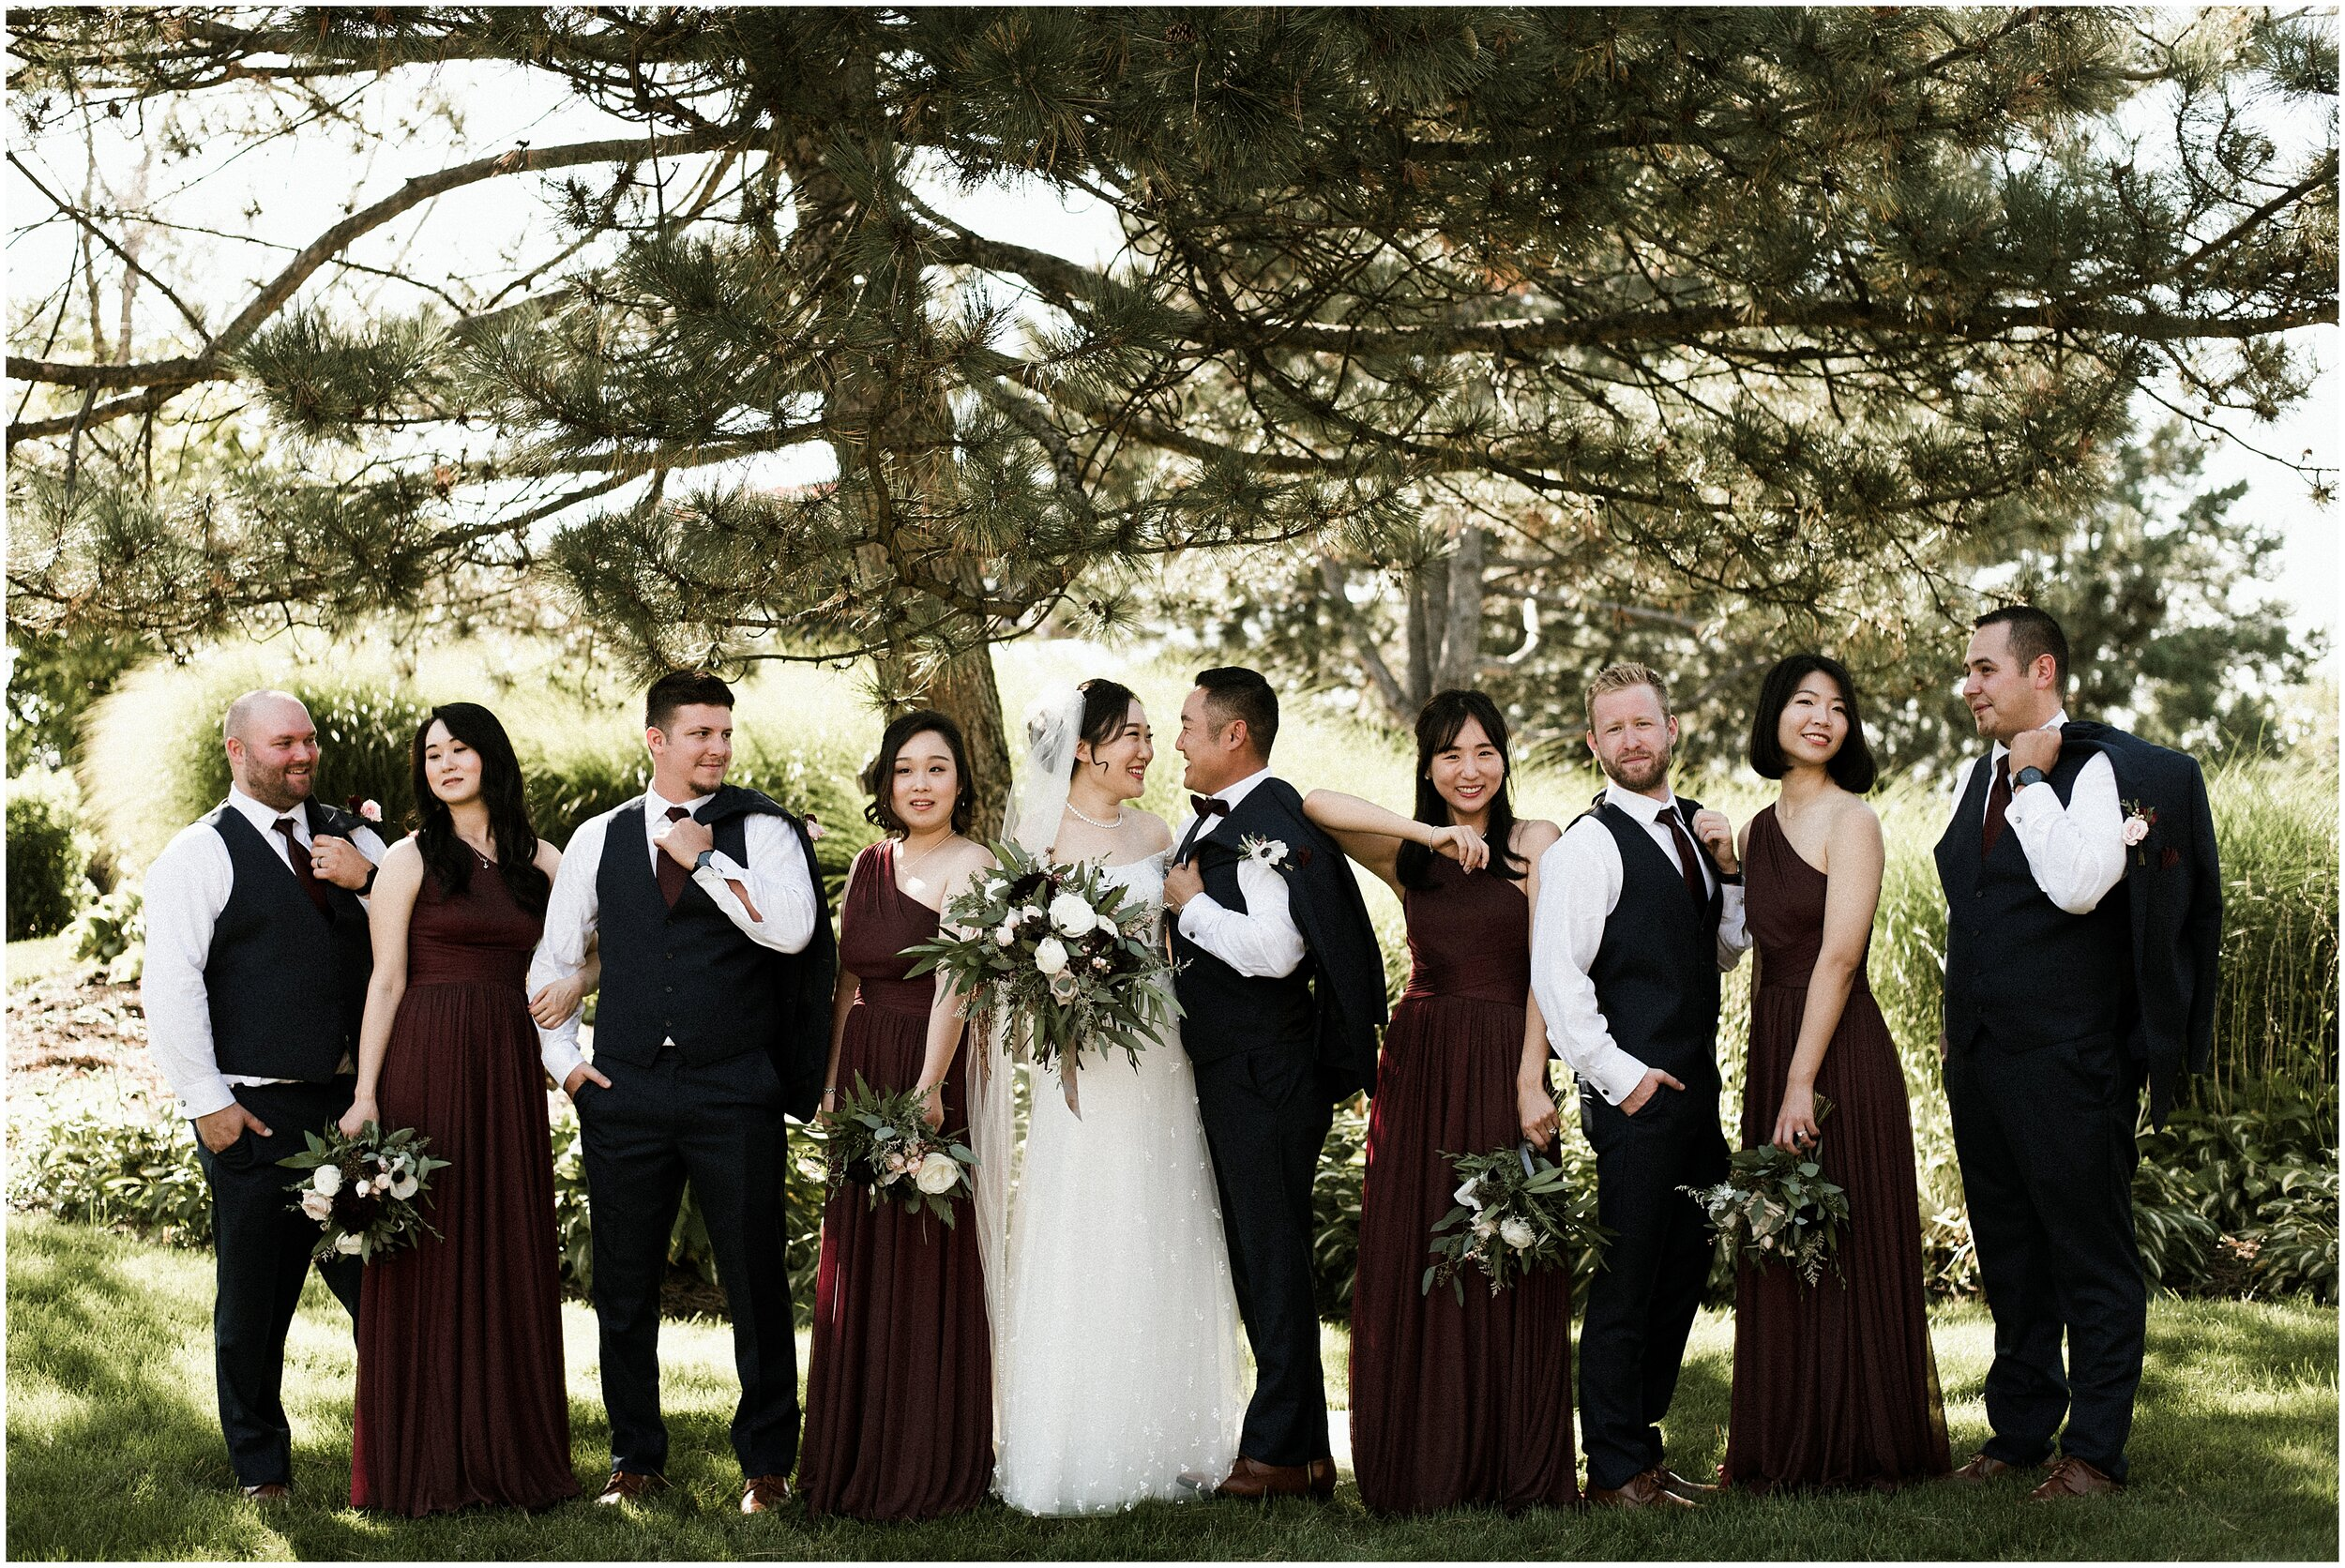 Anna and Jason | Romantic and Modern Chicago Wedding | The Estate by Gene and Georgetti Rosemont, IL | Naperville Wedding Photographer